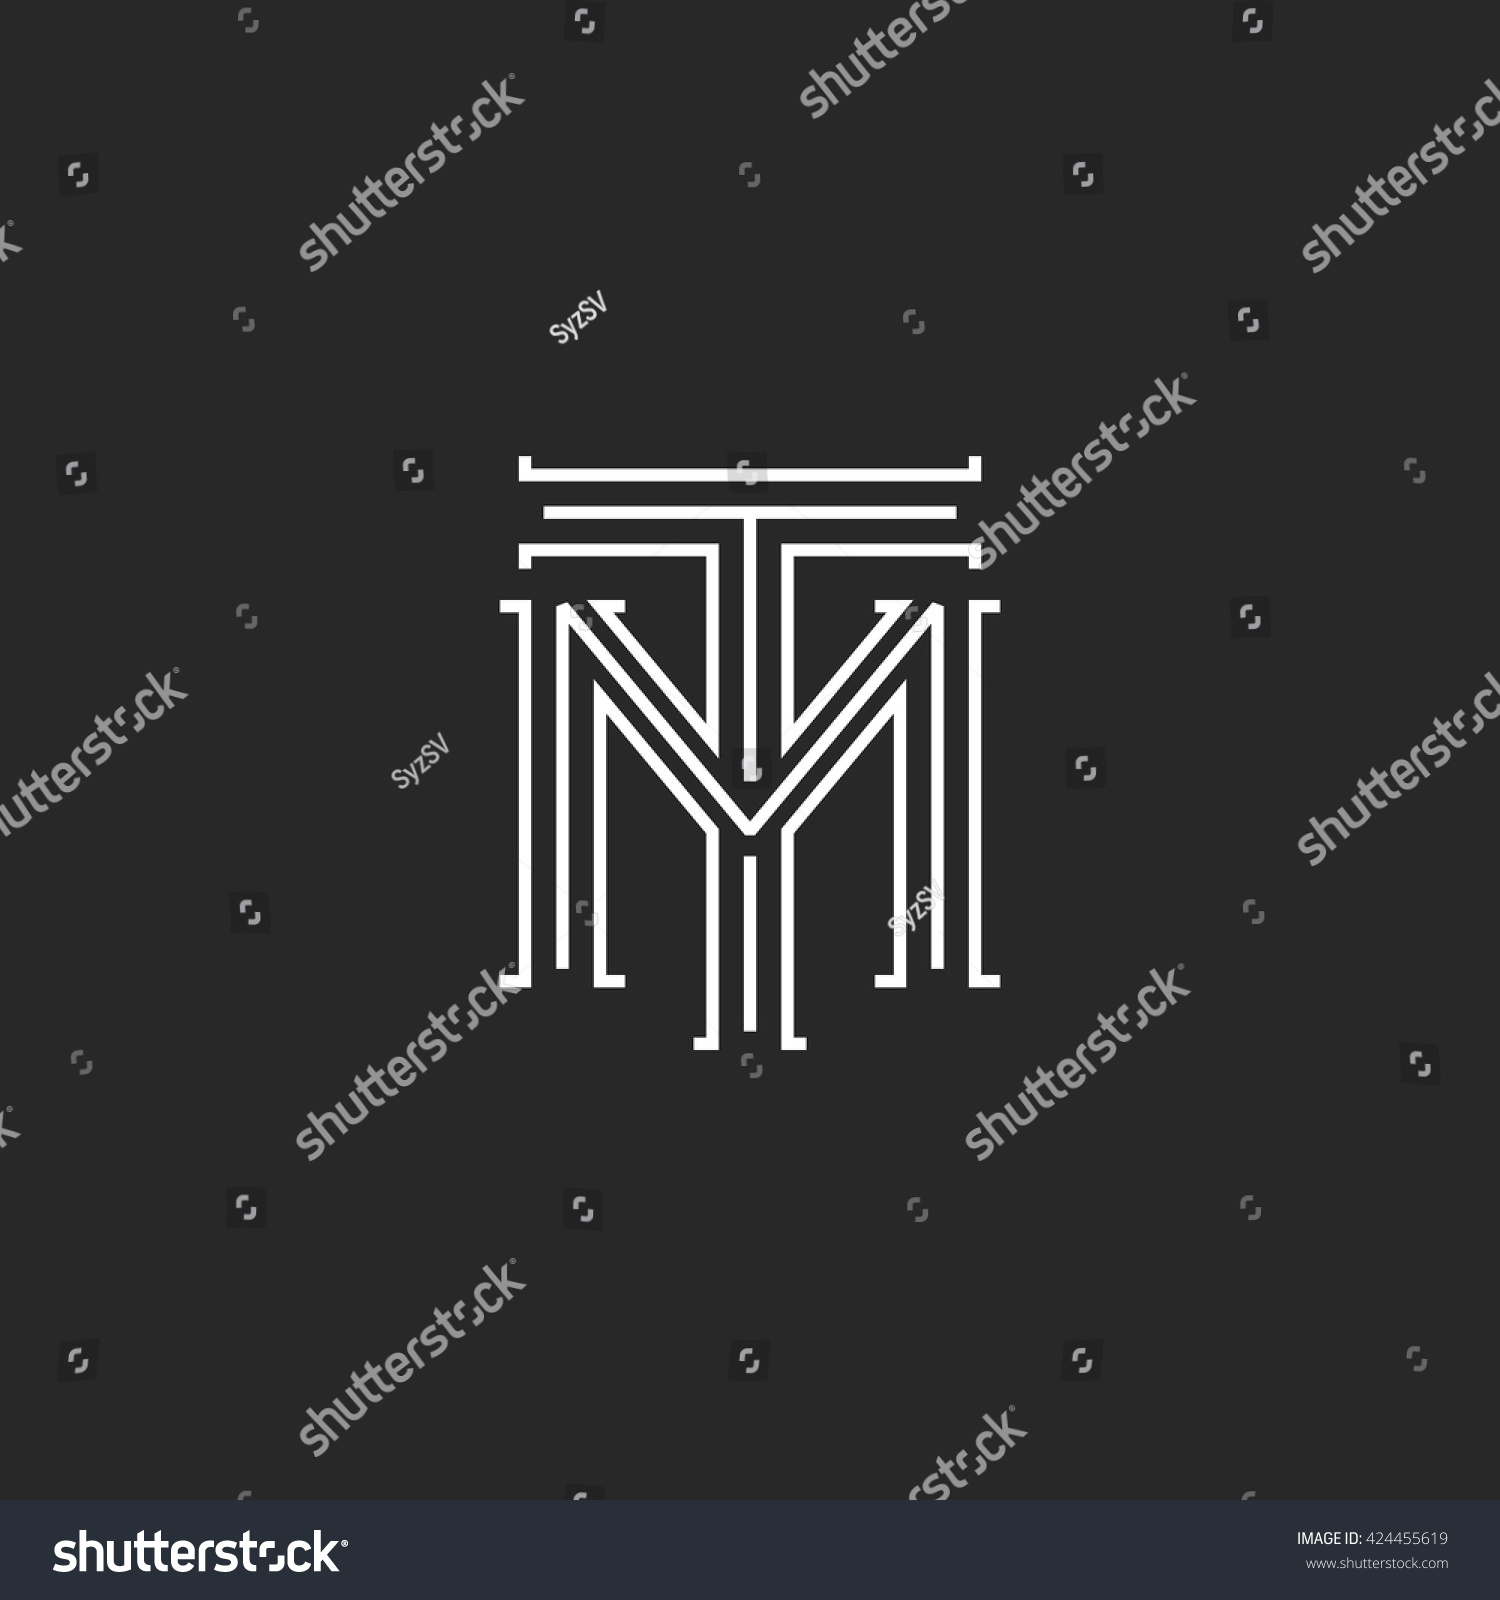 Monogram hipster initials tm logo letters stock vector 424455619 monogram hipster initials tm logo letters overlapping connection couple merger t m letters thin lines buycottarizona